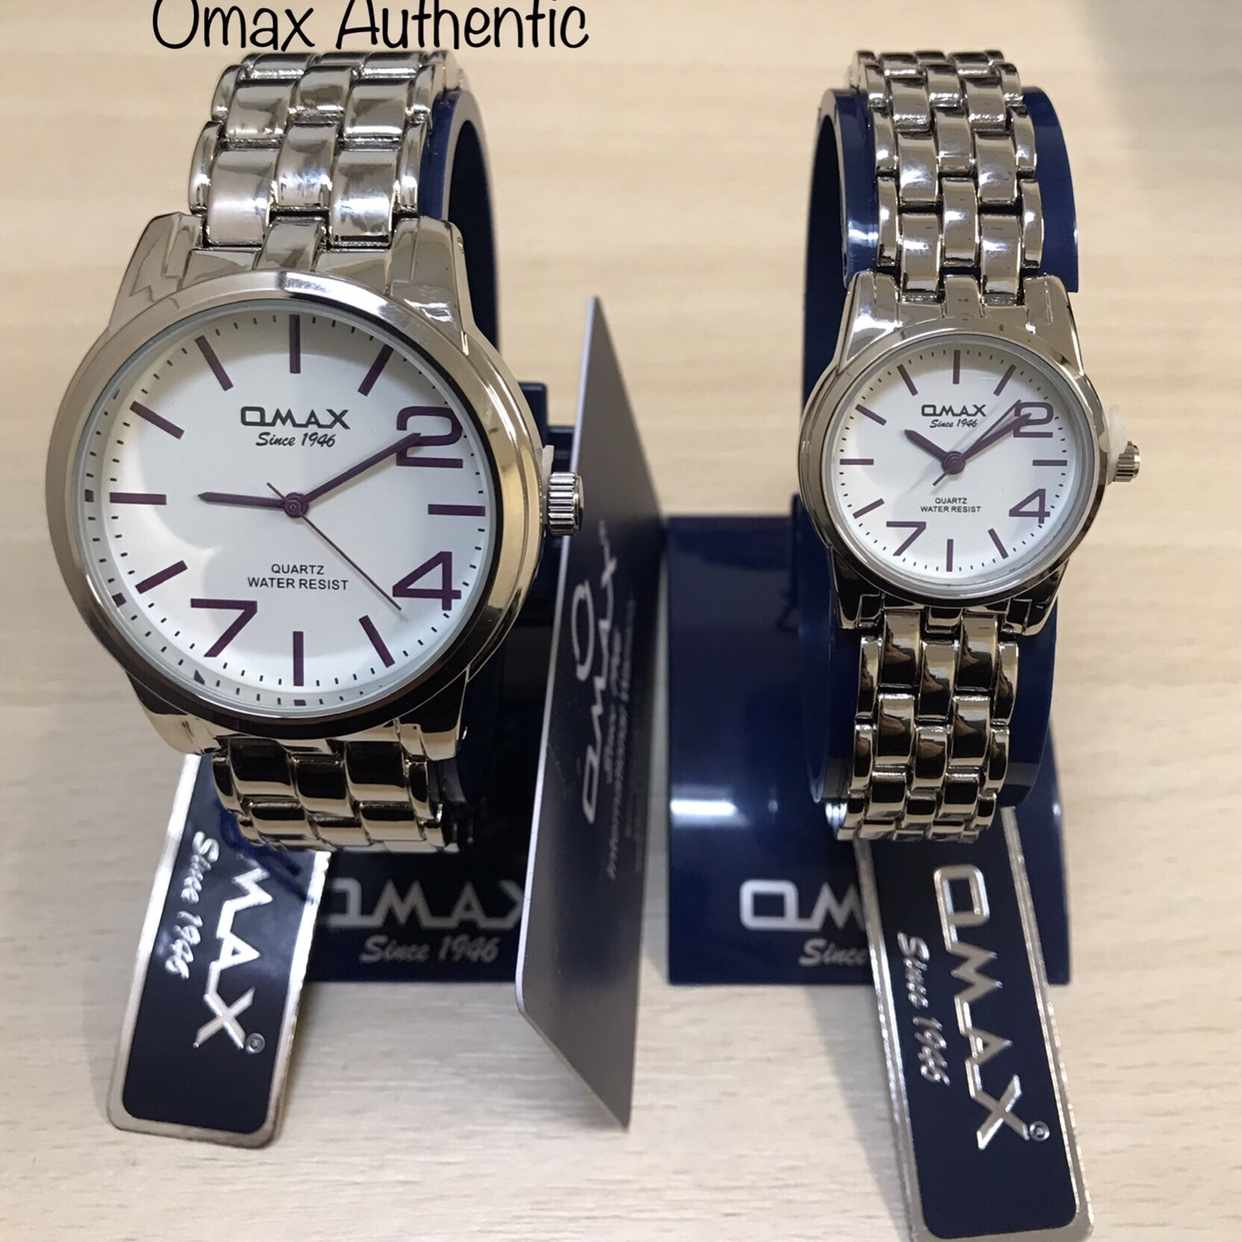 Omax Ladies & Gents Silver Dial Watches Matching Set